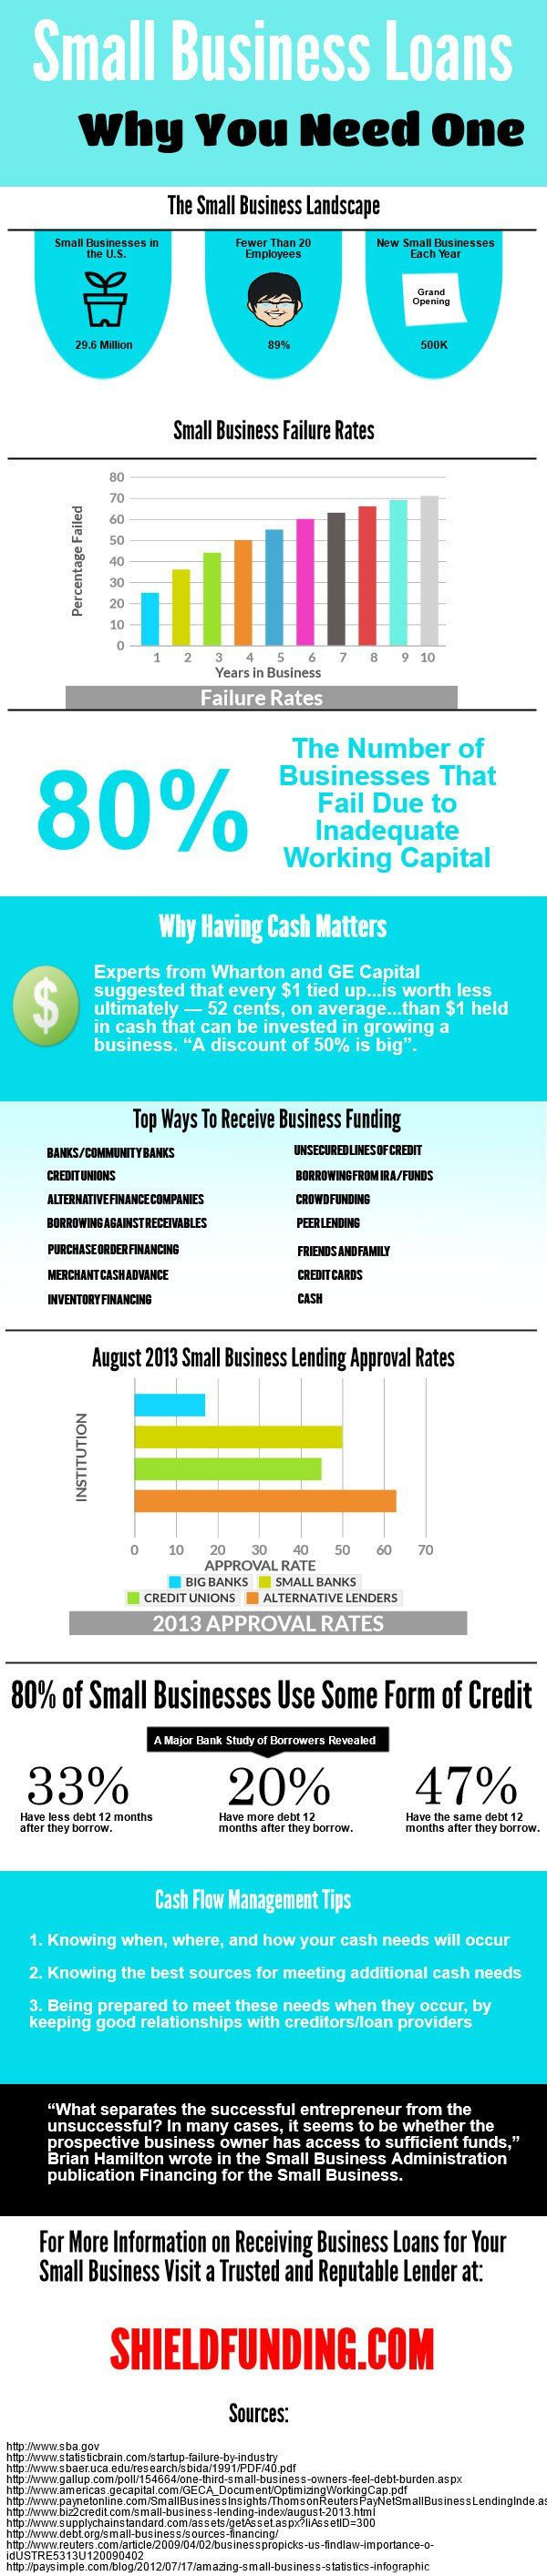 Uncategorized small business ideas small businesses ehow home business ideas to startsmall business ideas bad good ugly ideas - This Infographic Shows The Benefits For Businesses That Have Additional Capital Learn About The Opportunities Available For Business Funding Today